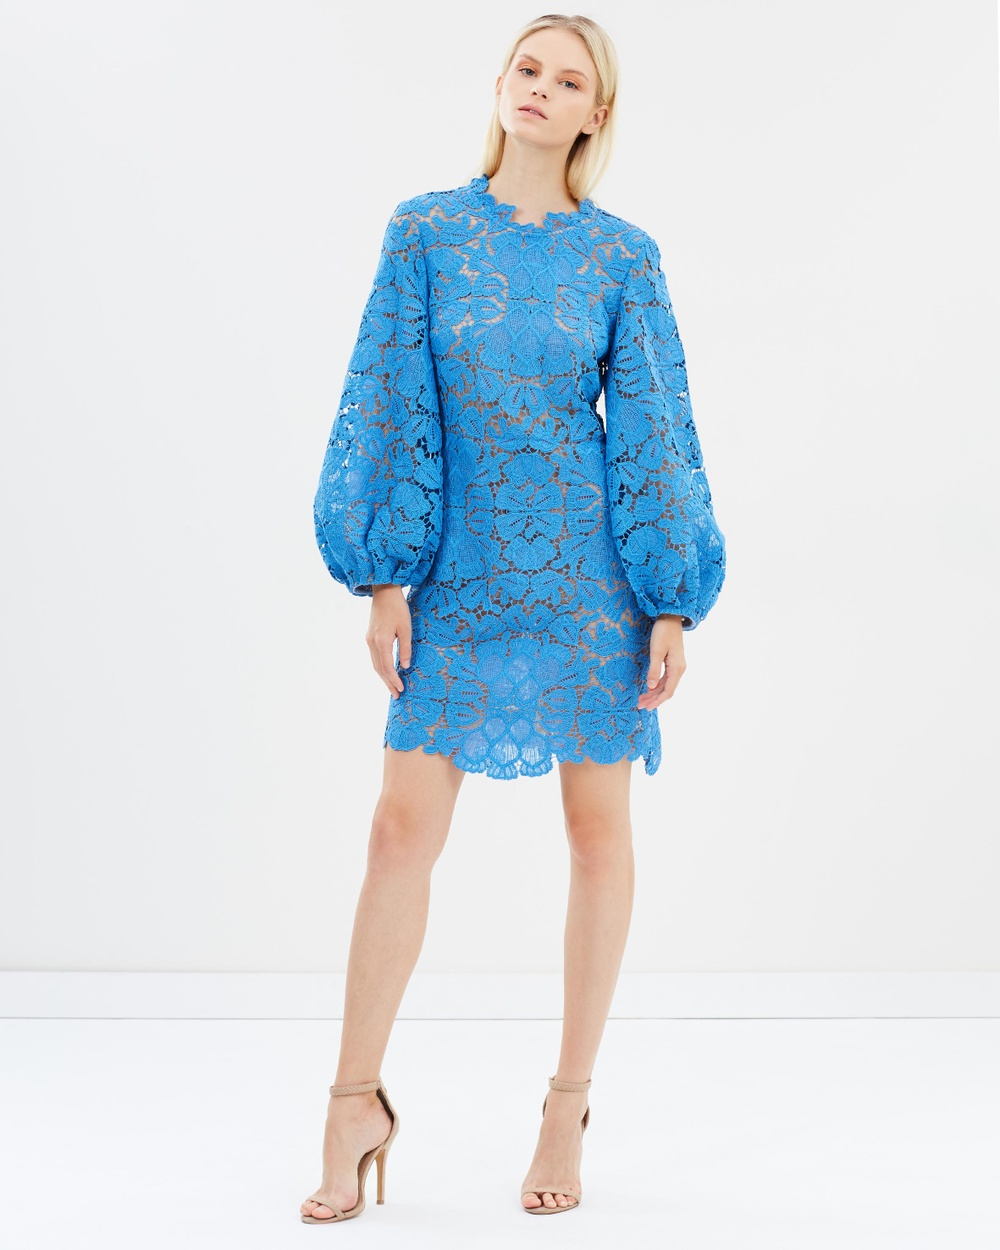 Ginger & Smart Mirage Dress with Sleeve Dresses Cyan Blue Mirage Dress with Sleeve